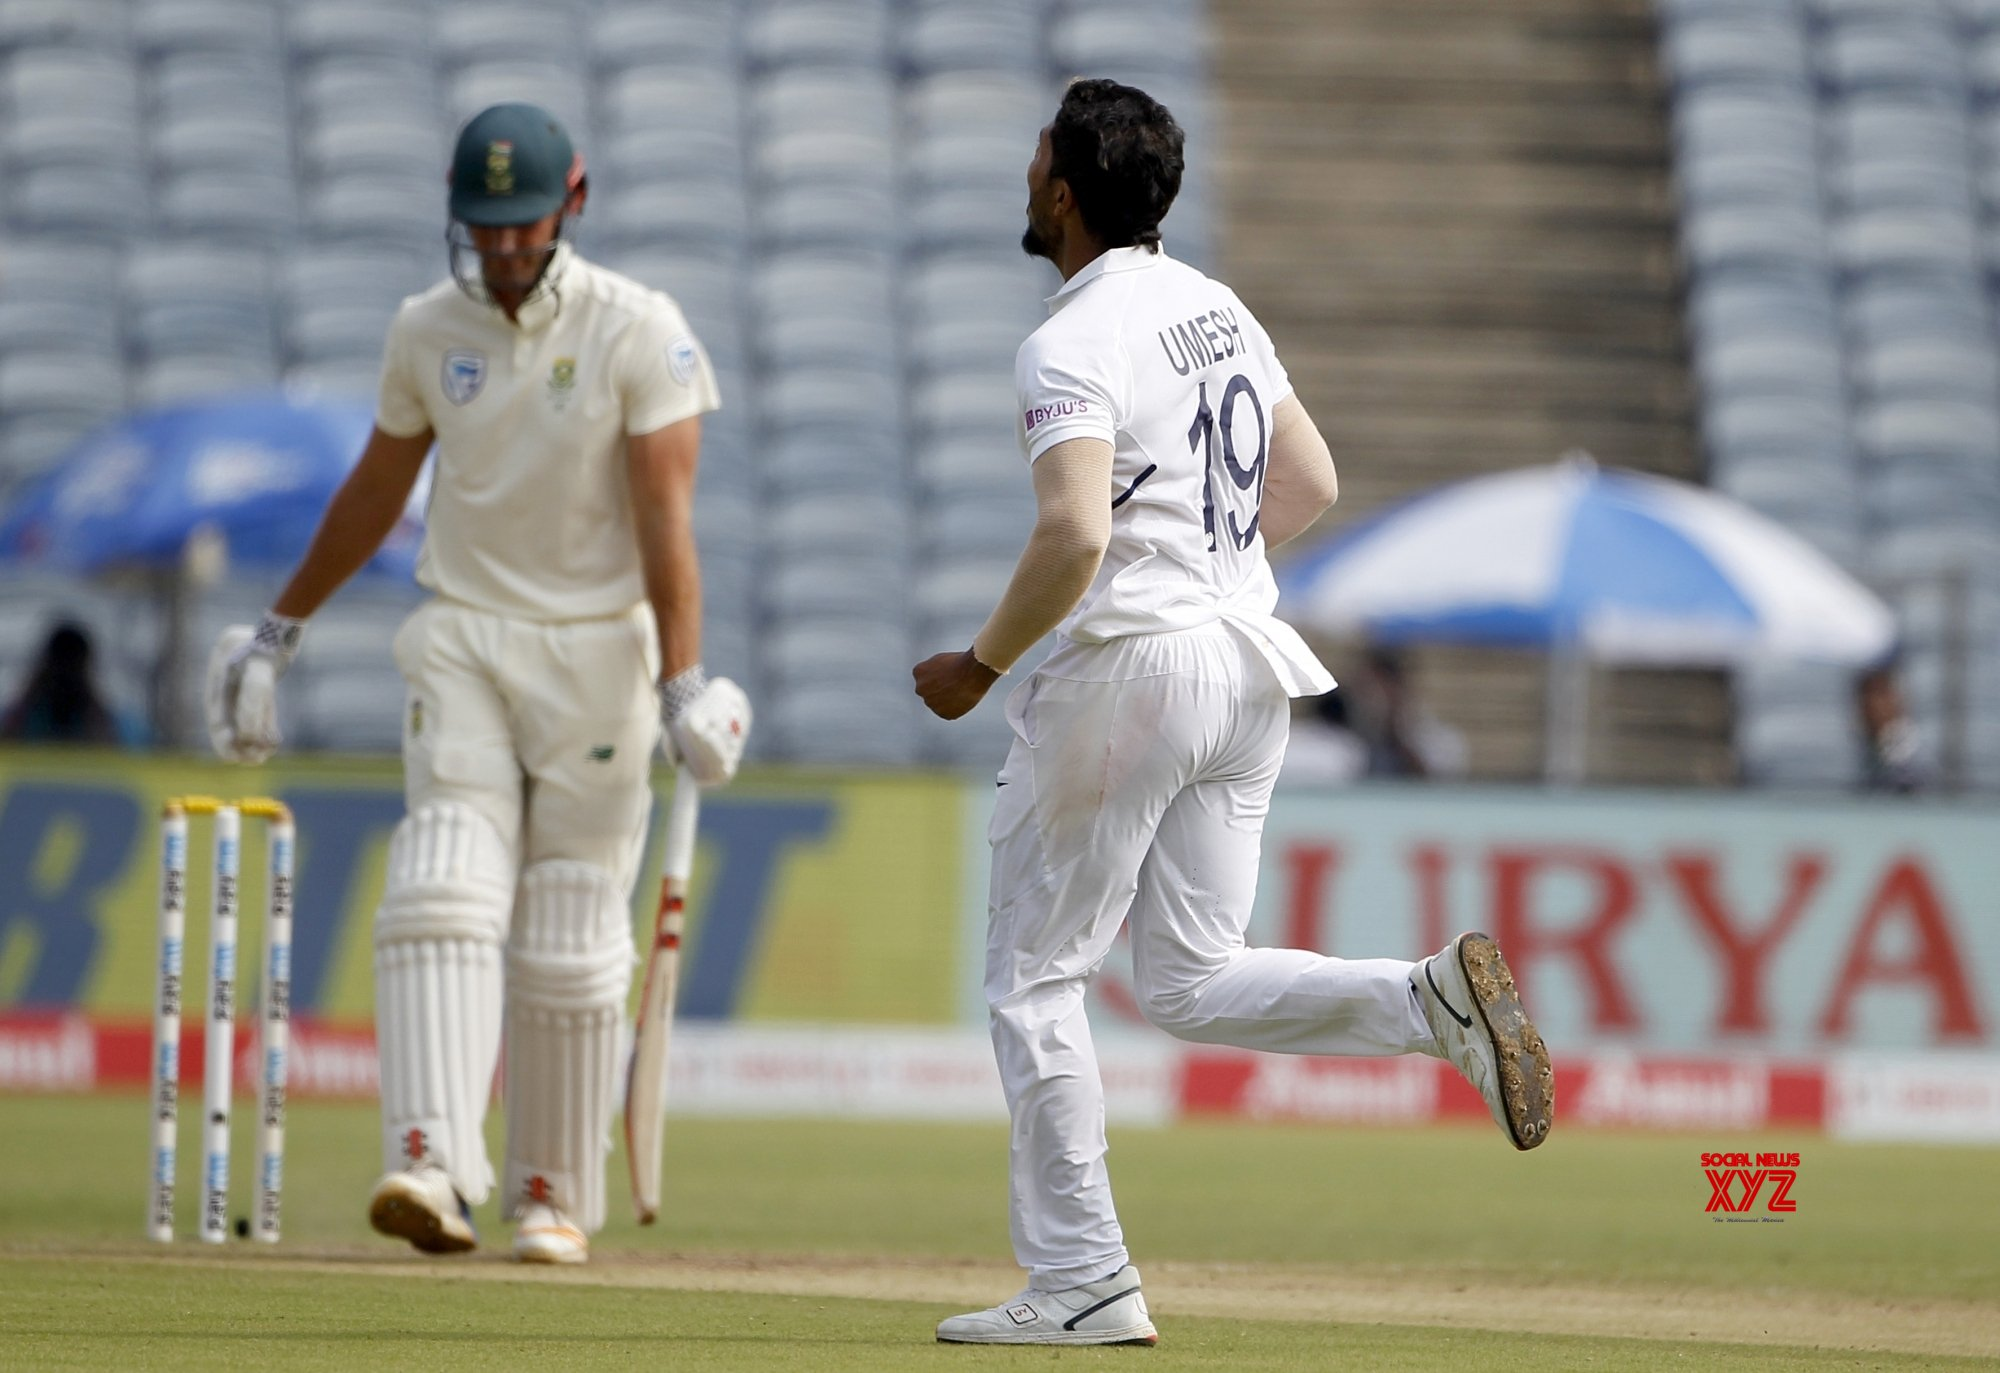 Pune: 2nd Test - India Vs South Africa - Day 3 (Batch - 5) #Gallery